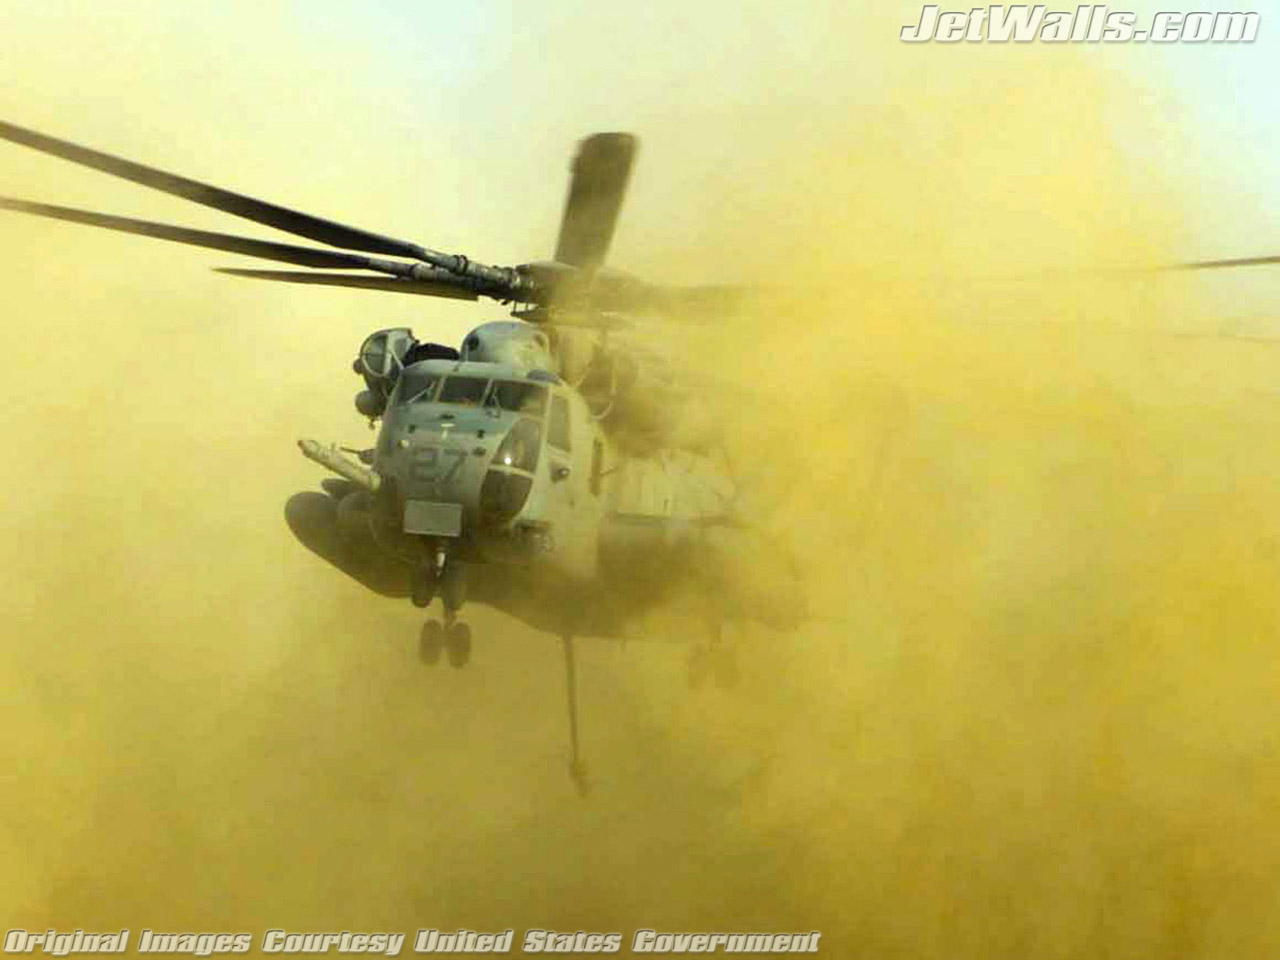 """CH-53 Super Stallion"" - Wallpaper No. 27 of 101. Right click for saving options."